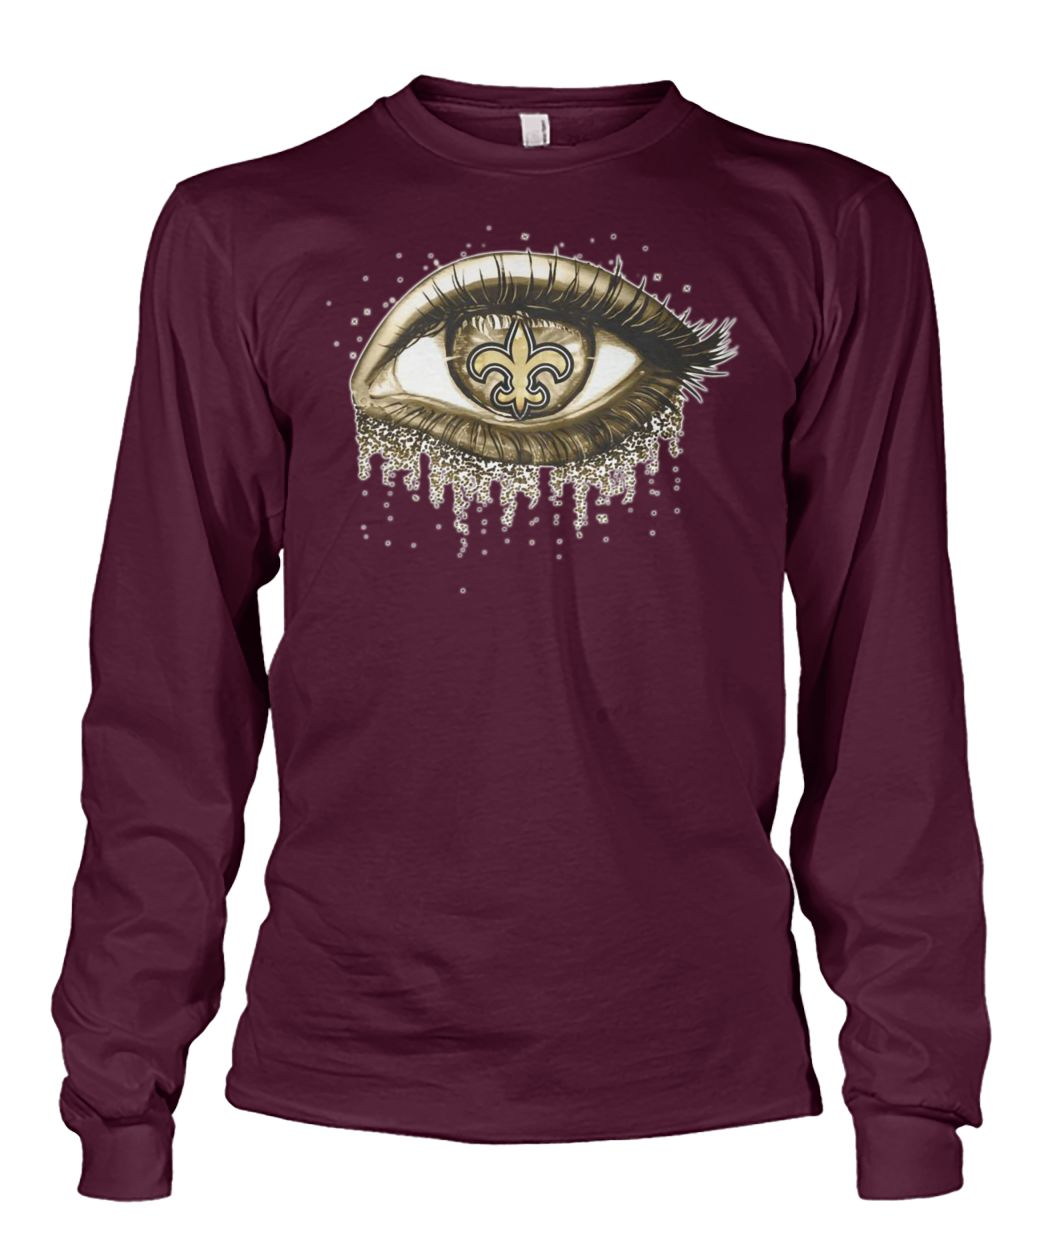 New orleans saints gold eyes glitter unisex long sleeve